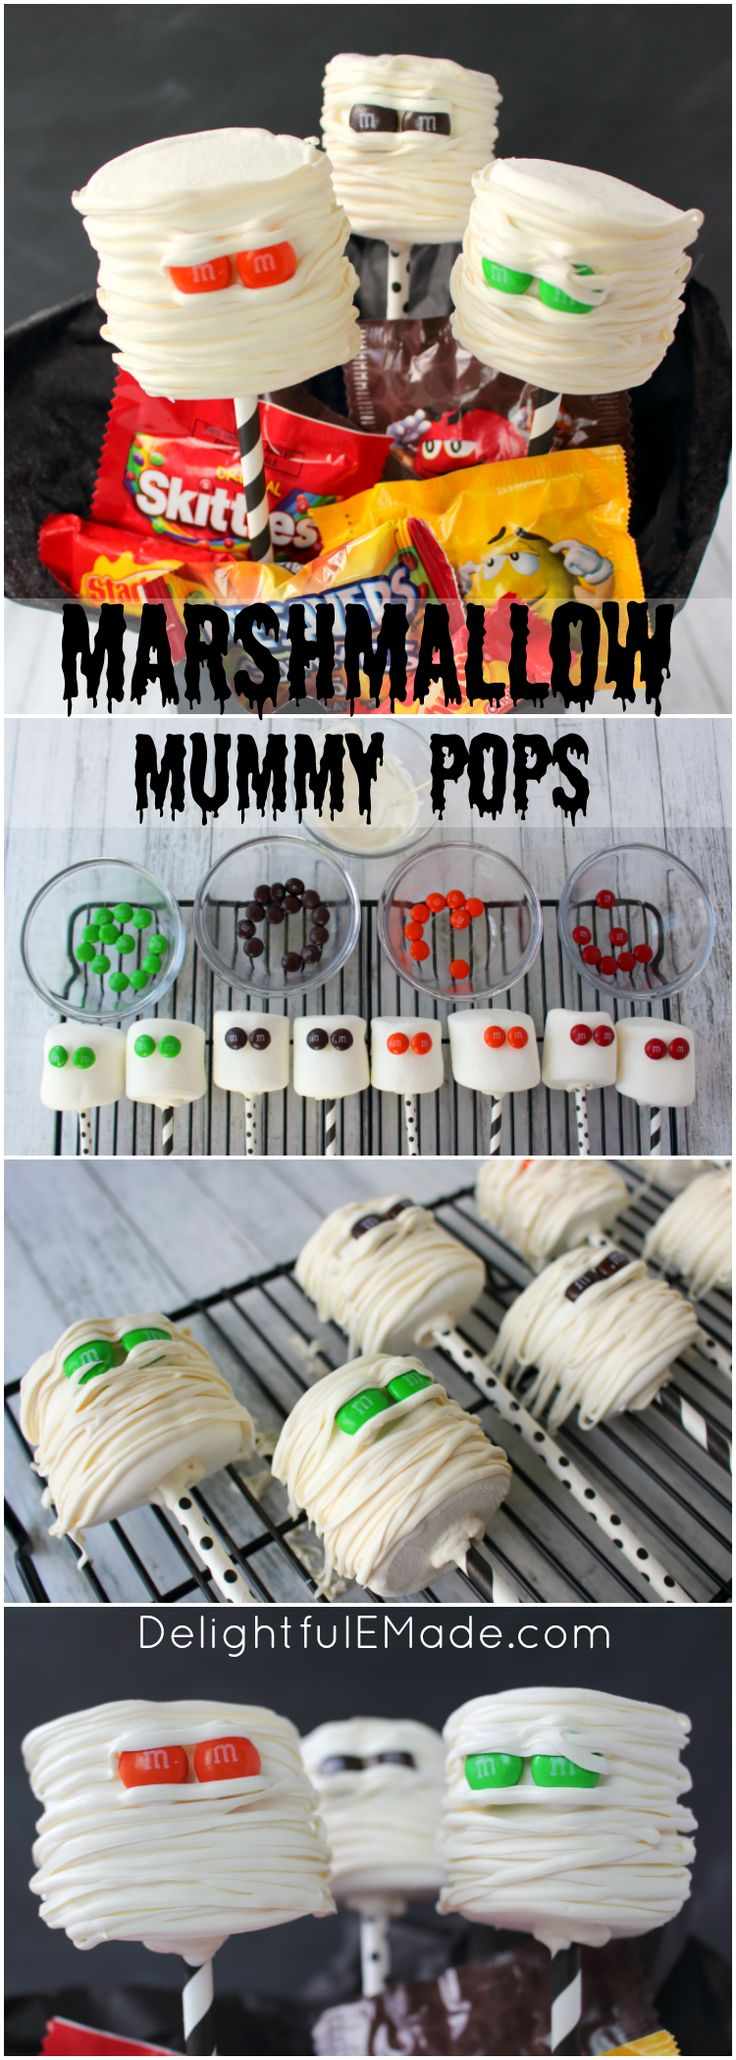 Top 25+ best Halloween boo ideas on Pinterest | Boo sign, Boo door ...